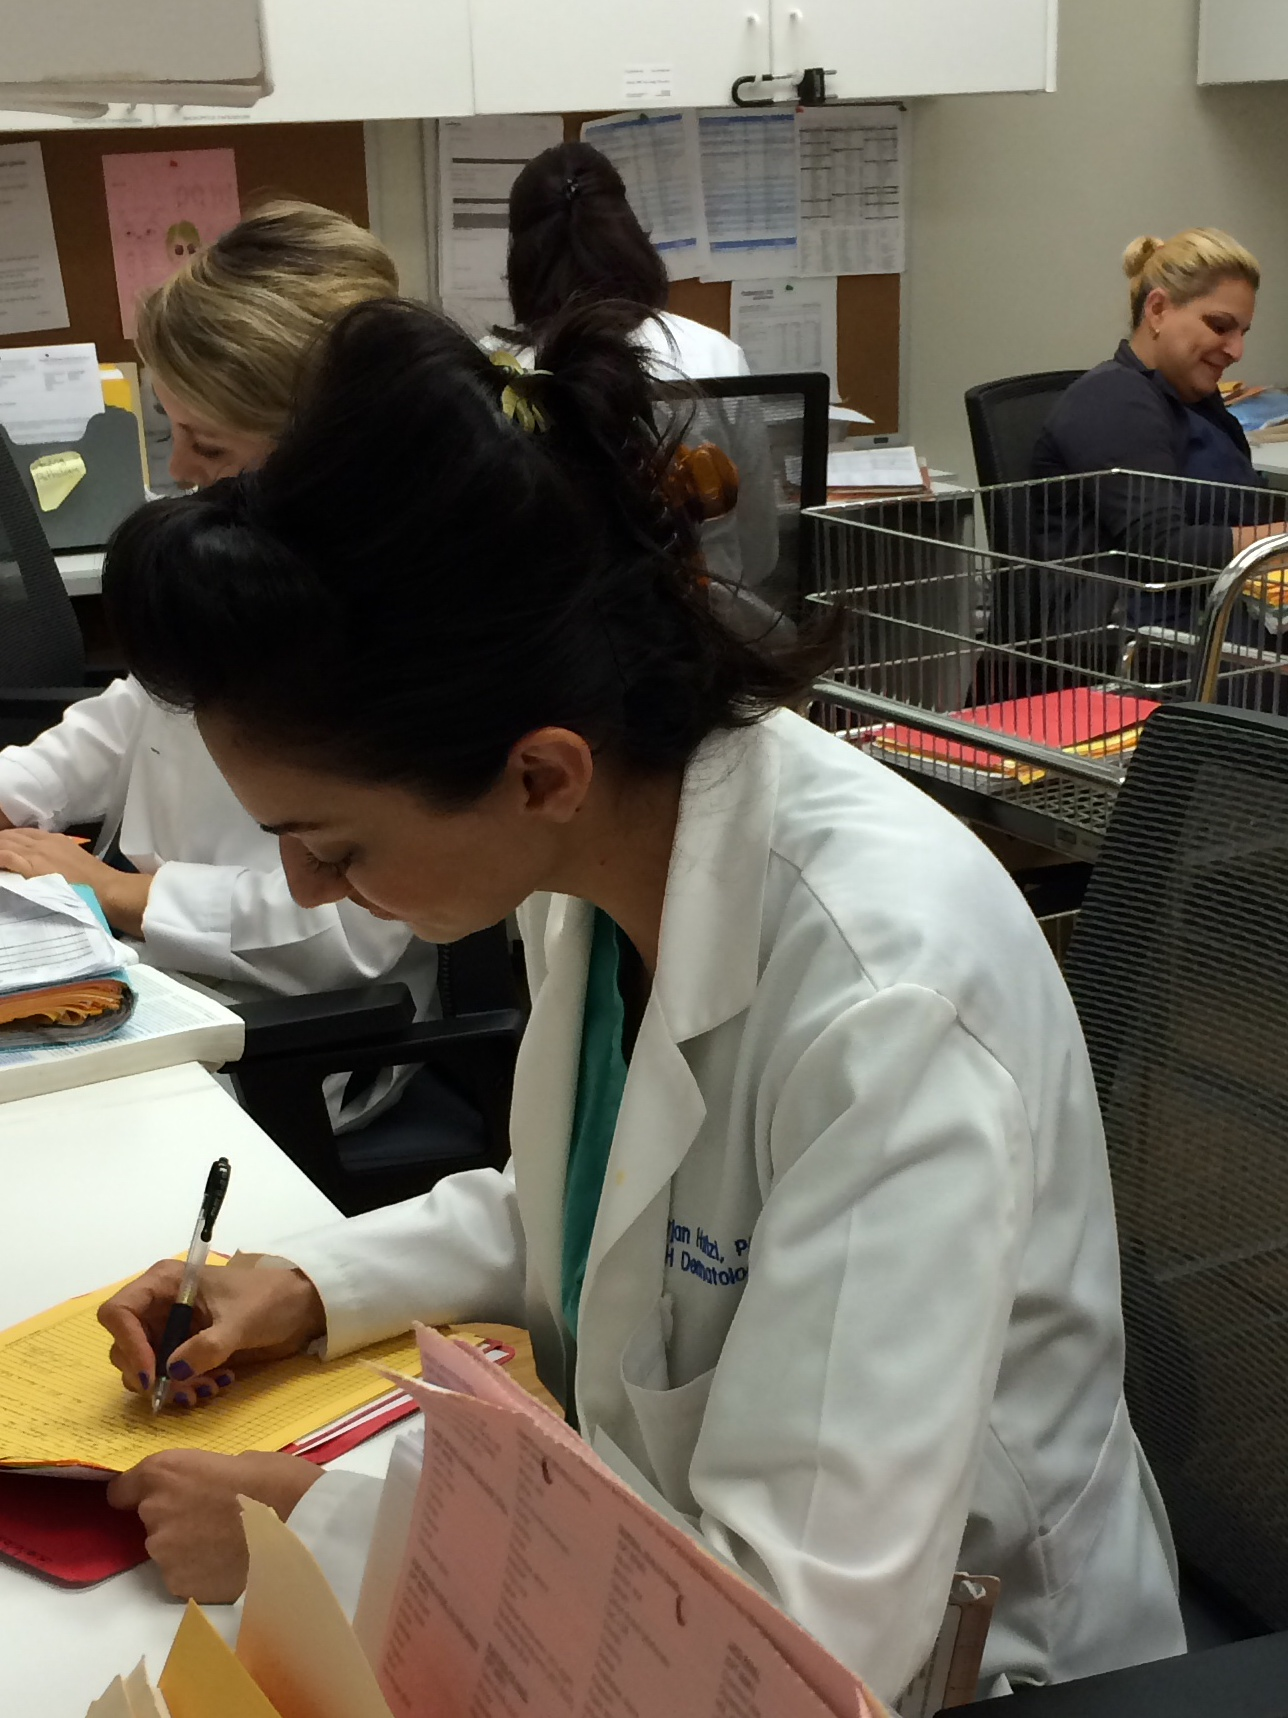 beverly hills dermatology consultants our medical assistants and administrative staff are devoted to making your at beverly hills dermatology consultants a pleasant one